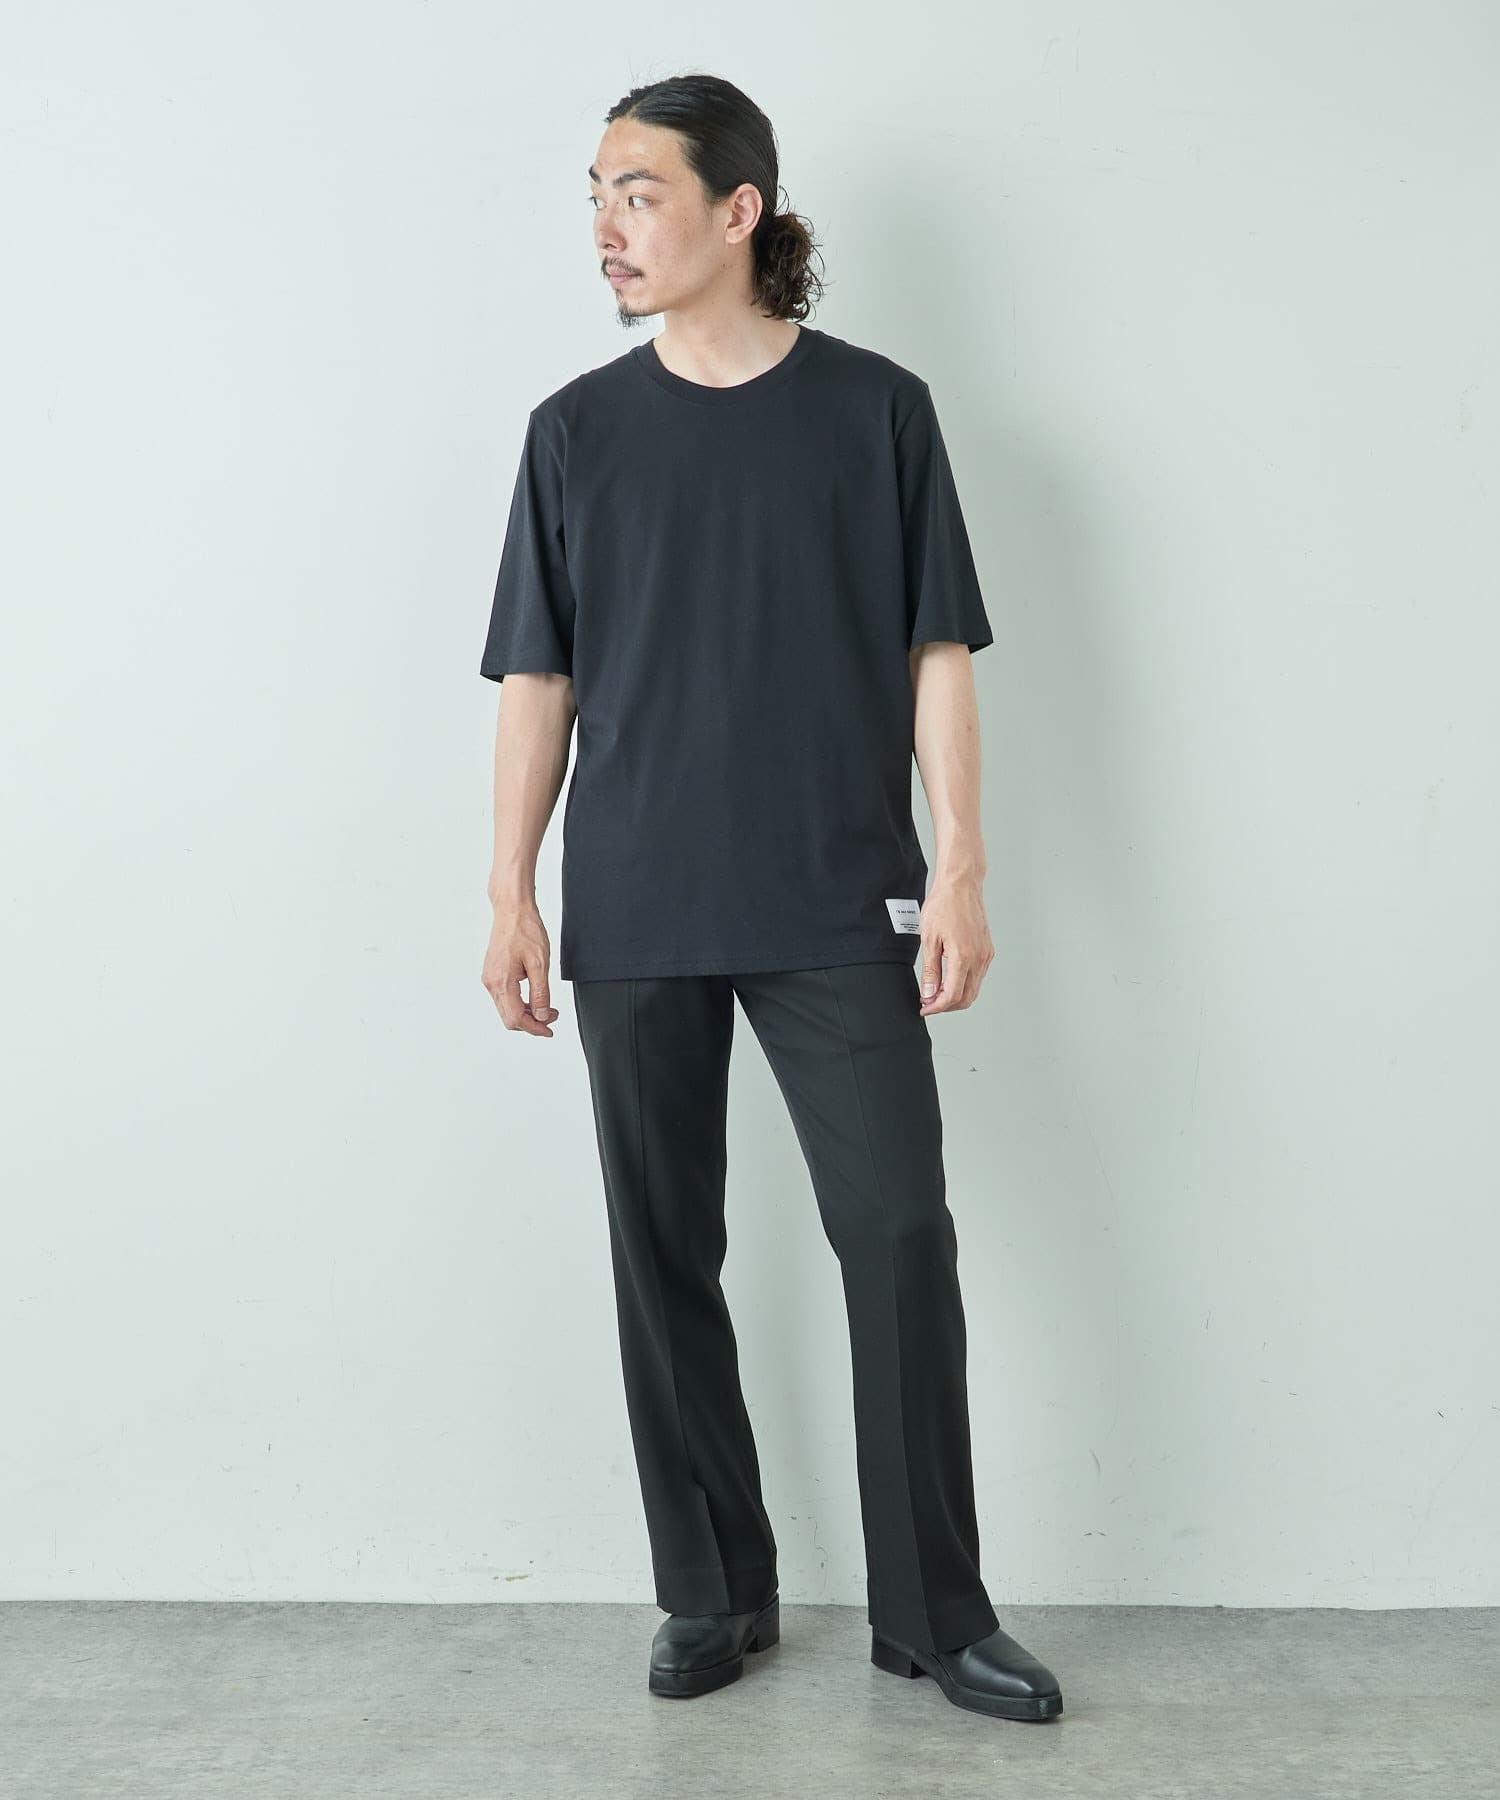 Lui's(ルイス) 【THE INOUE BROTHERS】Pack T-shirt ×2